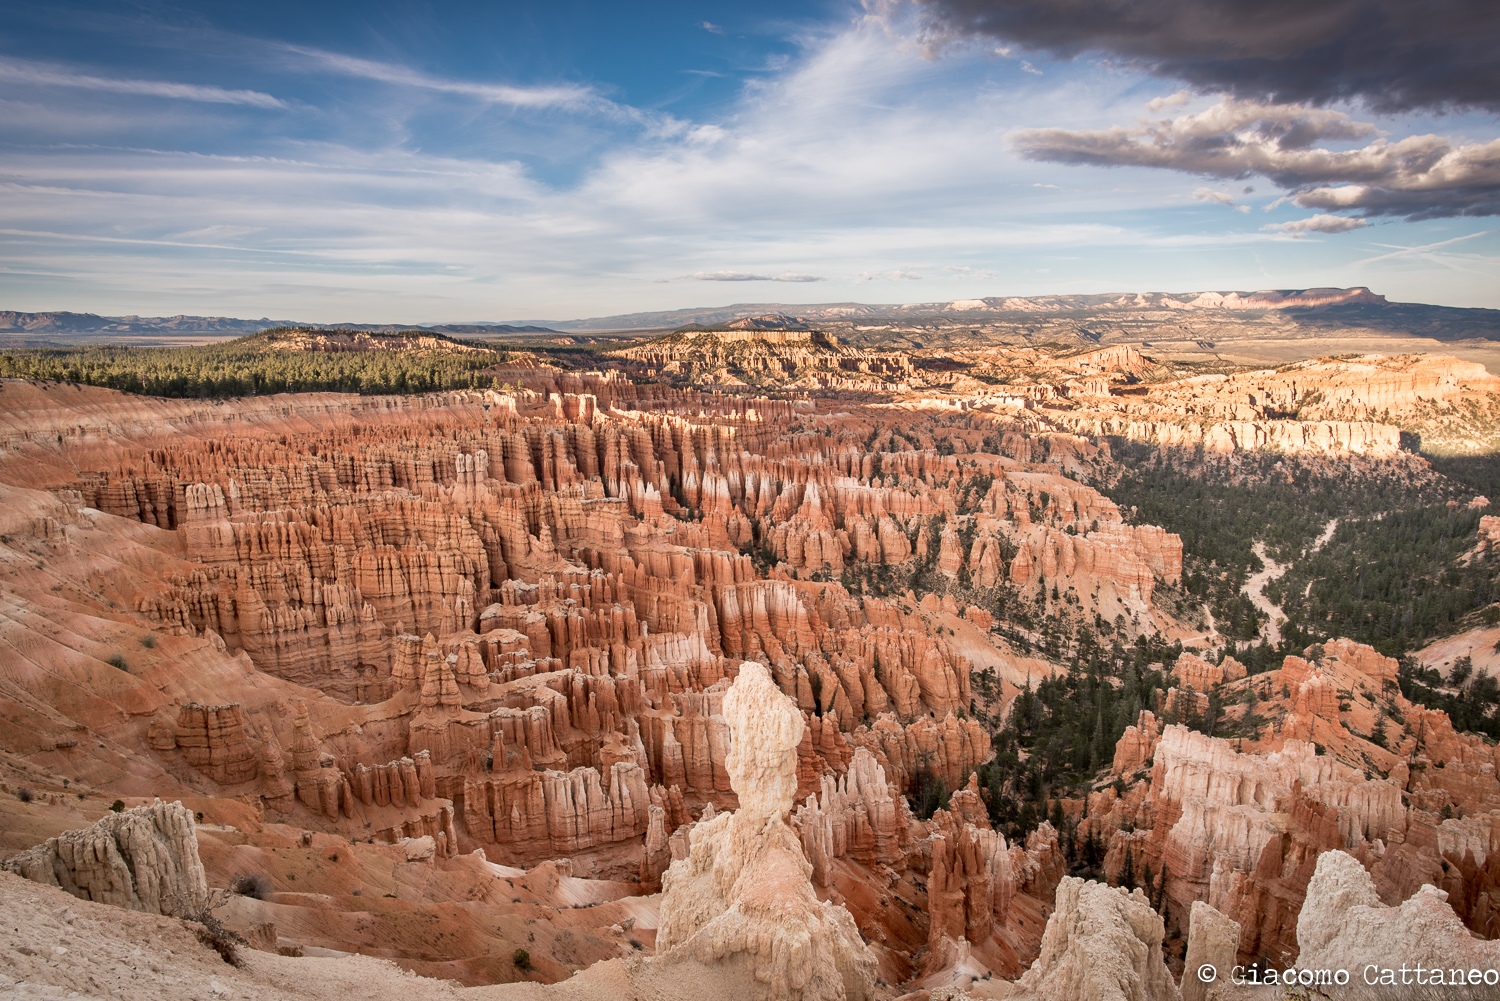 Bryce Canyon National Park - ISO 250, 20mm, f/13, 1/80 sec